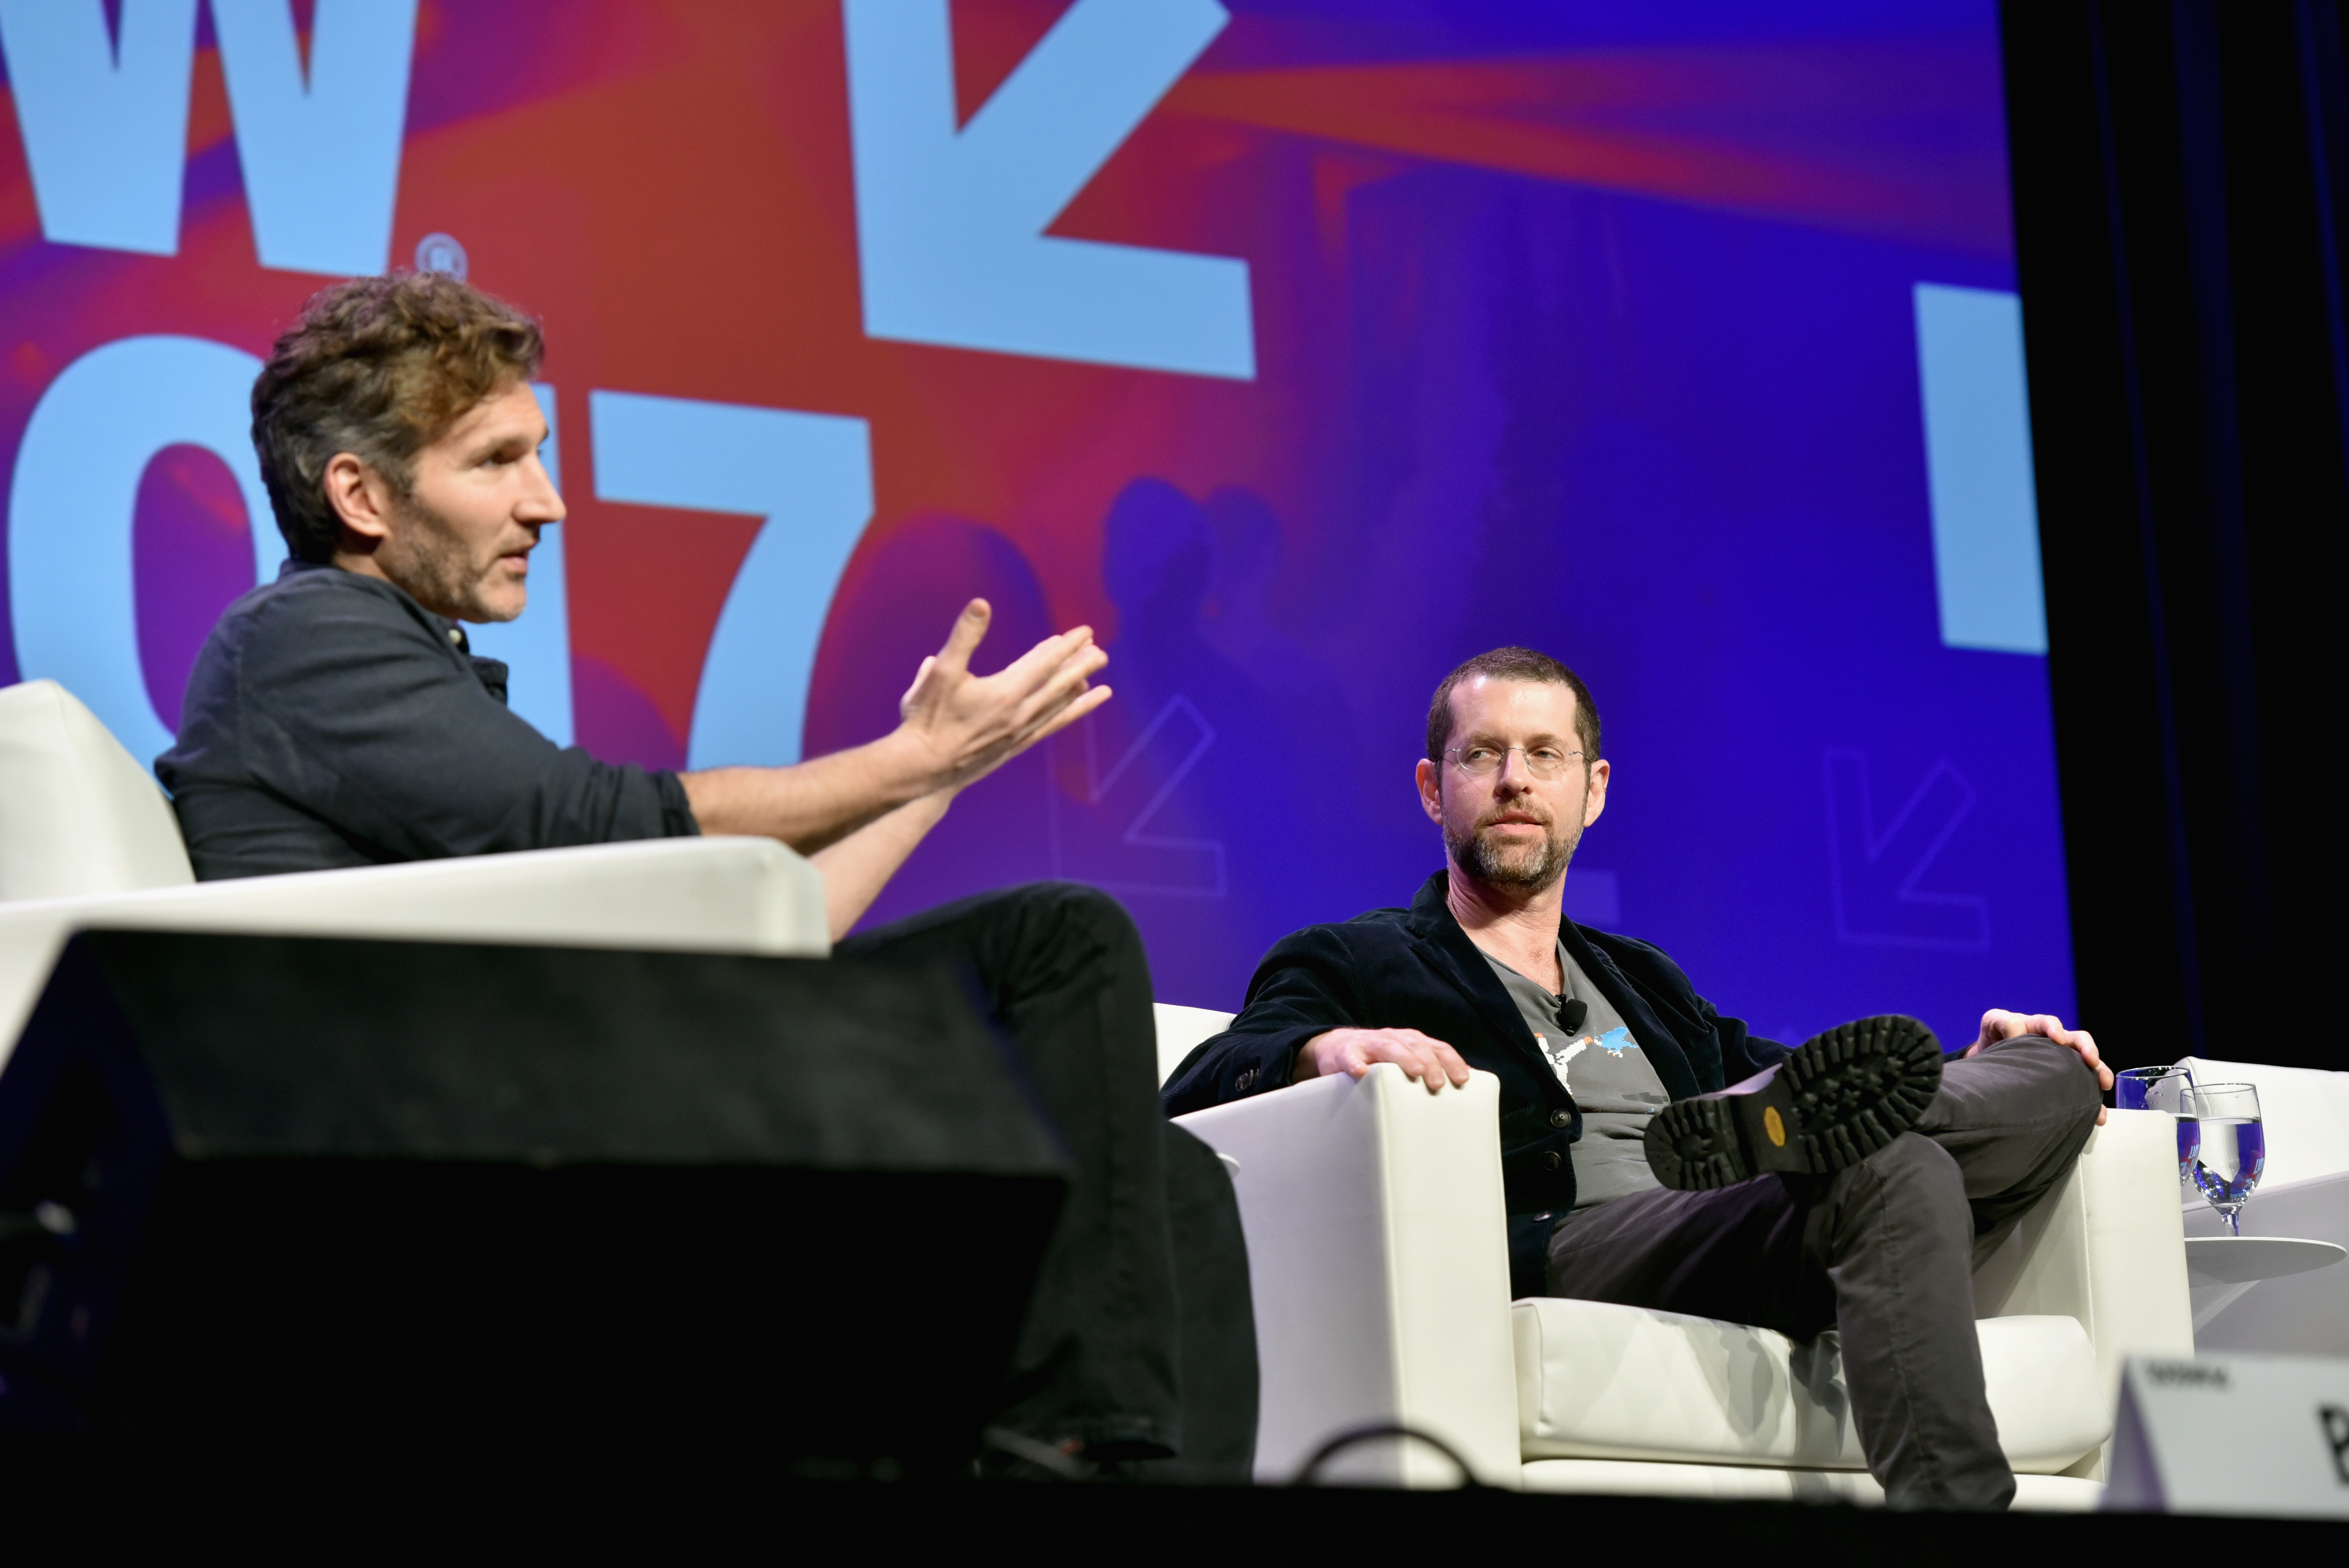 Writers David Benioff (L) and  D.B. Weiss speak onstage at 'Featured Session: Game of Thrones' during 2017 SXSW Conference and Festivals at Austin Convention Center on March 12, 2017 in Austin.